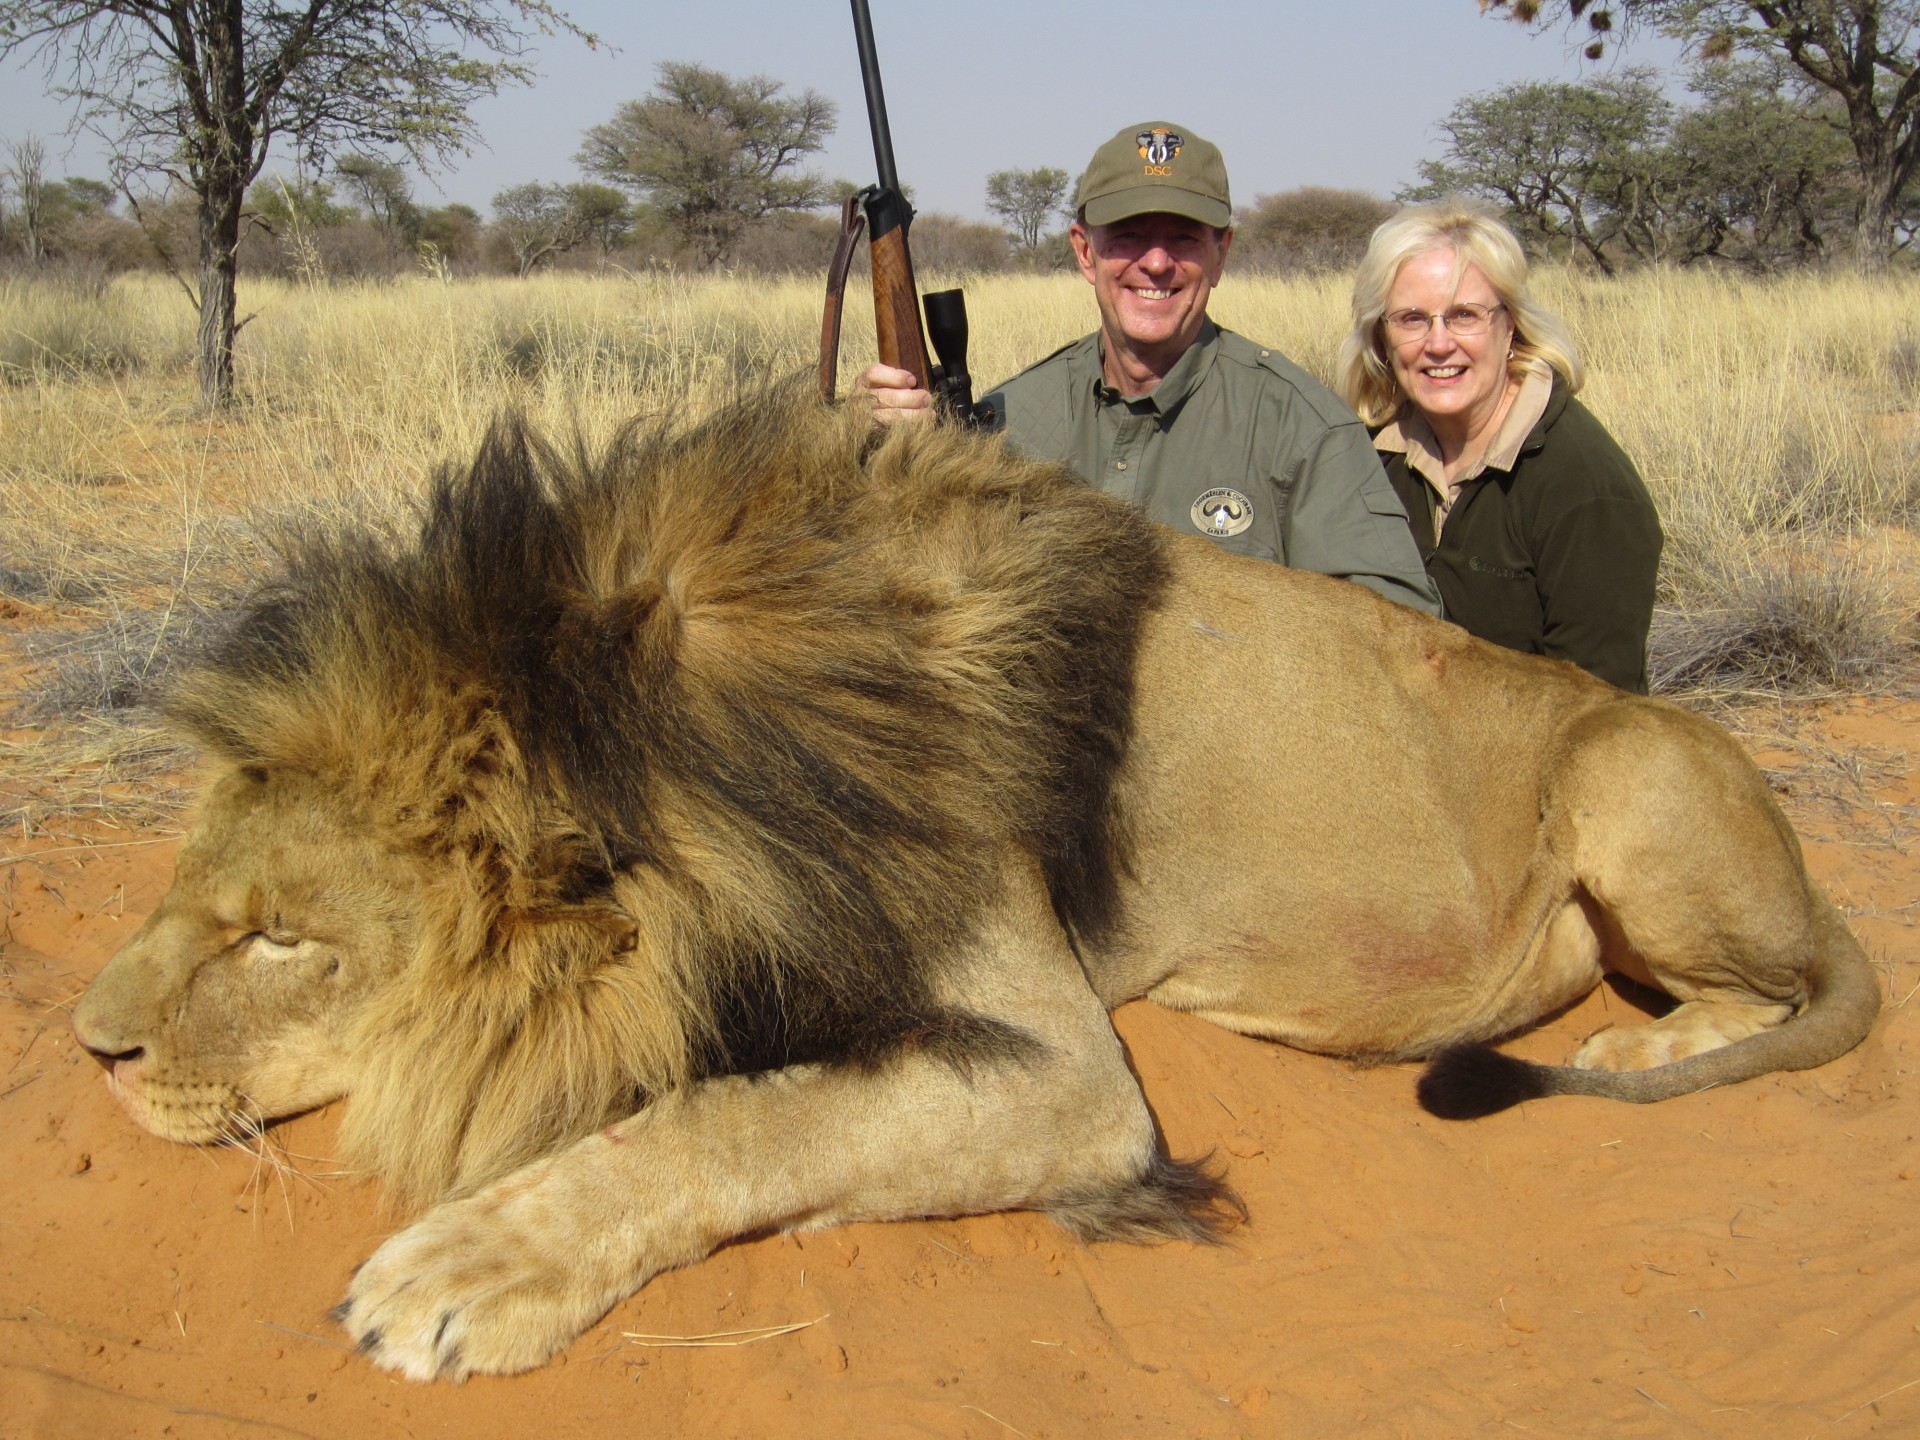 should animal hunting be banned First let me say i'm not a hunter but i am not sold on the position we should ban hunting 1 hunting may appear cruel, but in harsh climates starvation is a reality for many wild animalsa culling of the herds will allow more animals to survive a harsh winter where starvation is a.